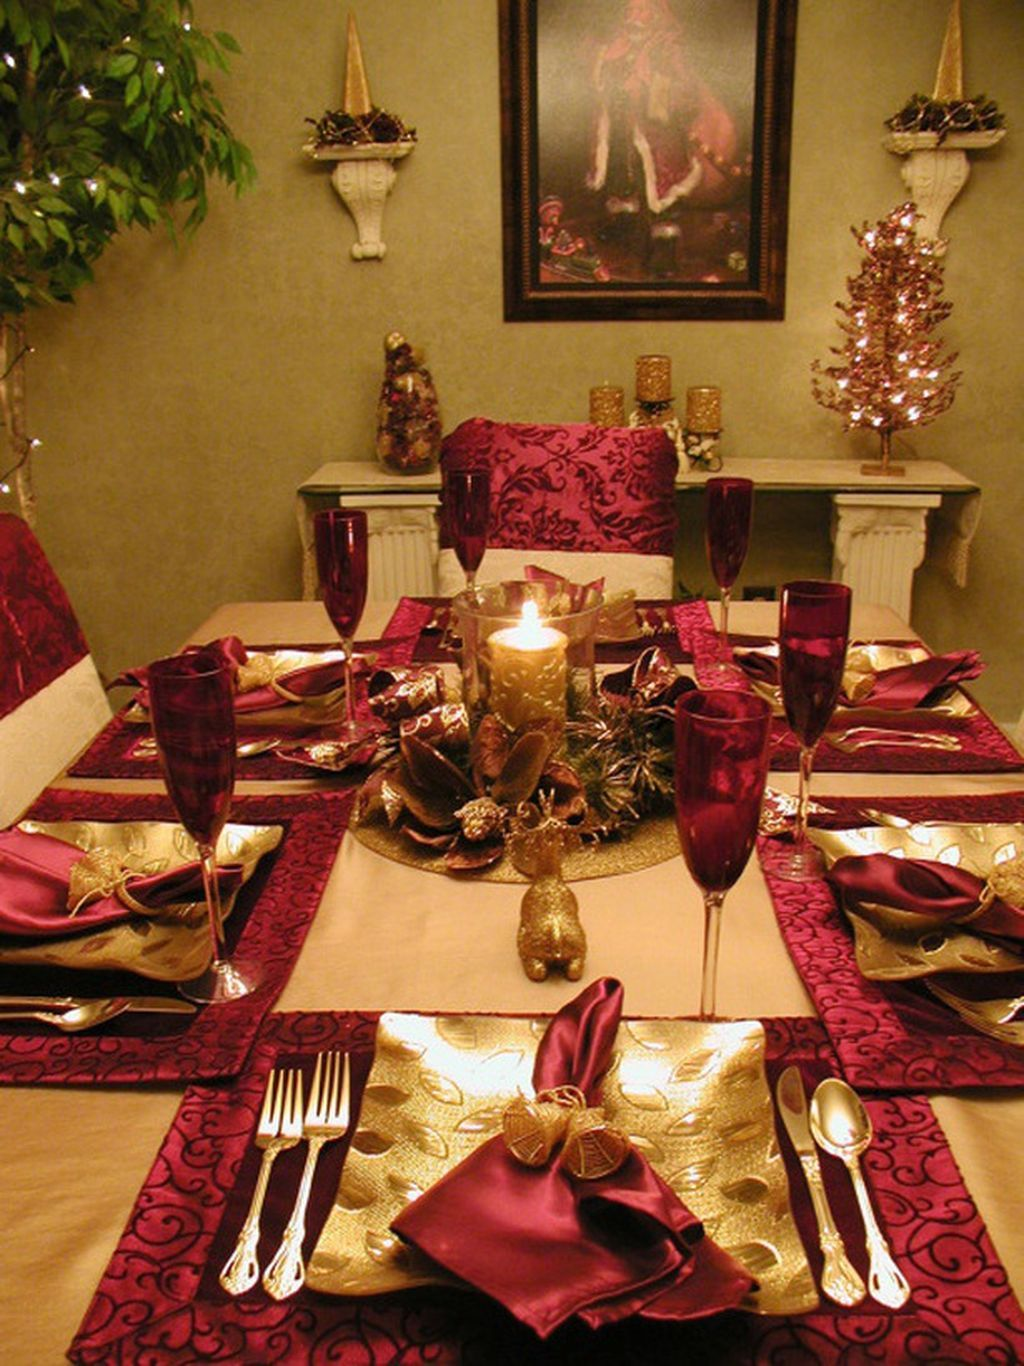 pin by ofelia on ideas para boda pinterest gold christmas decorations gold christmas and red gold - Red And Gold Christmas Table Decorations